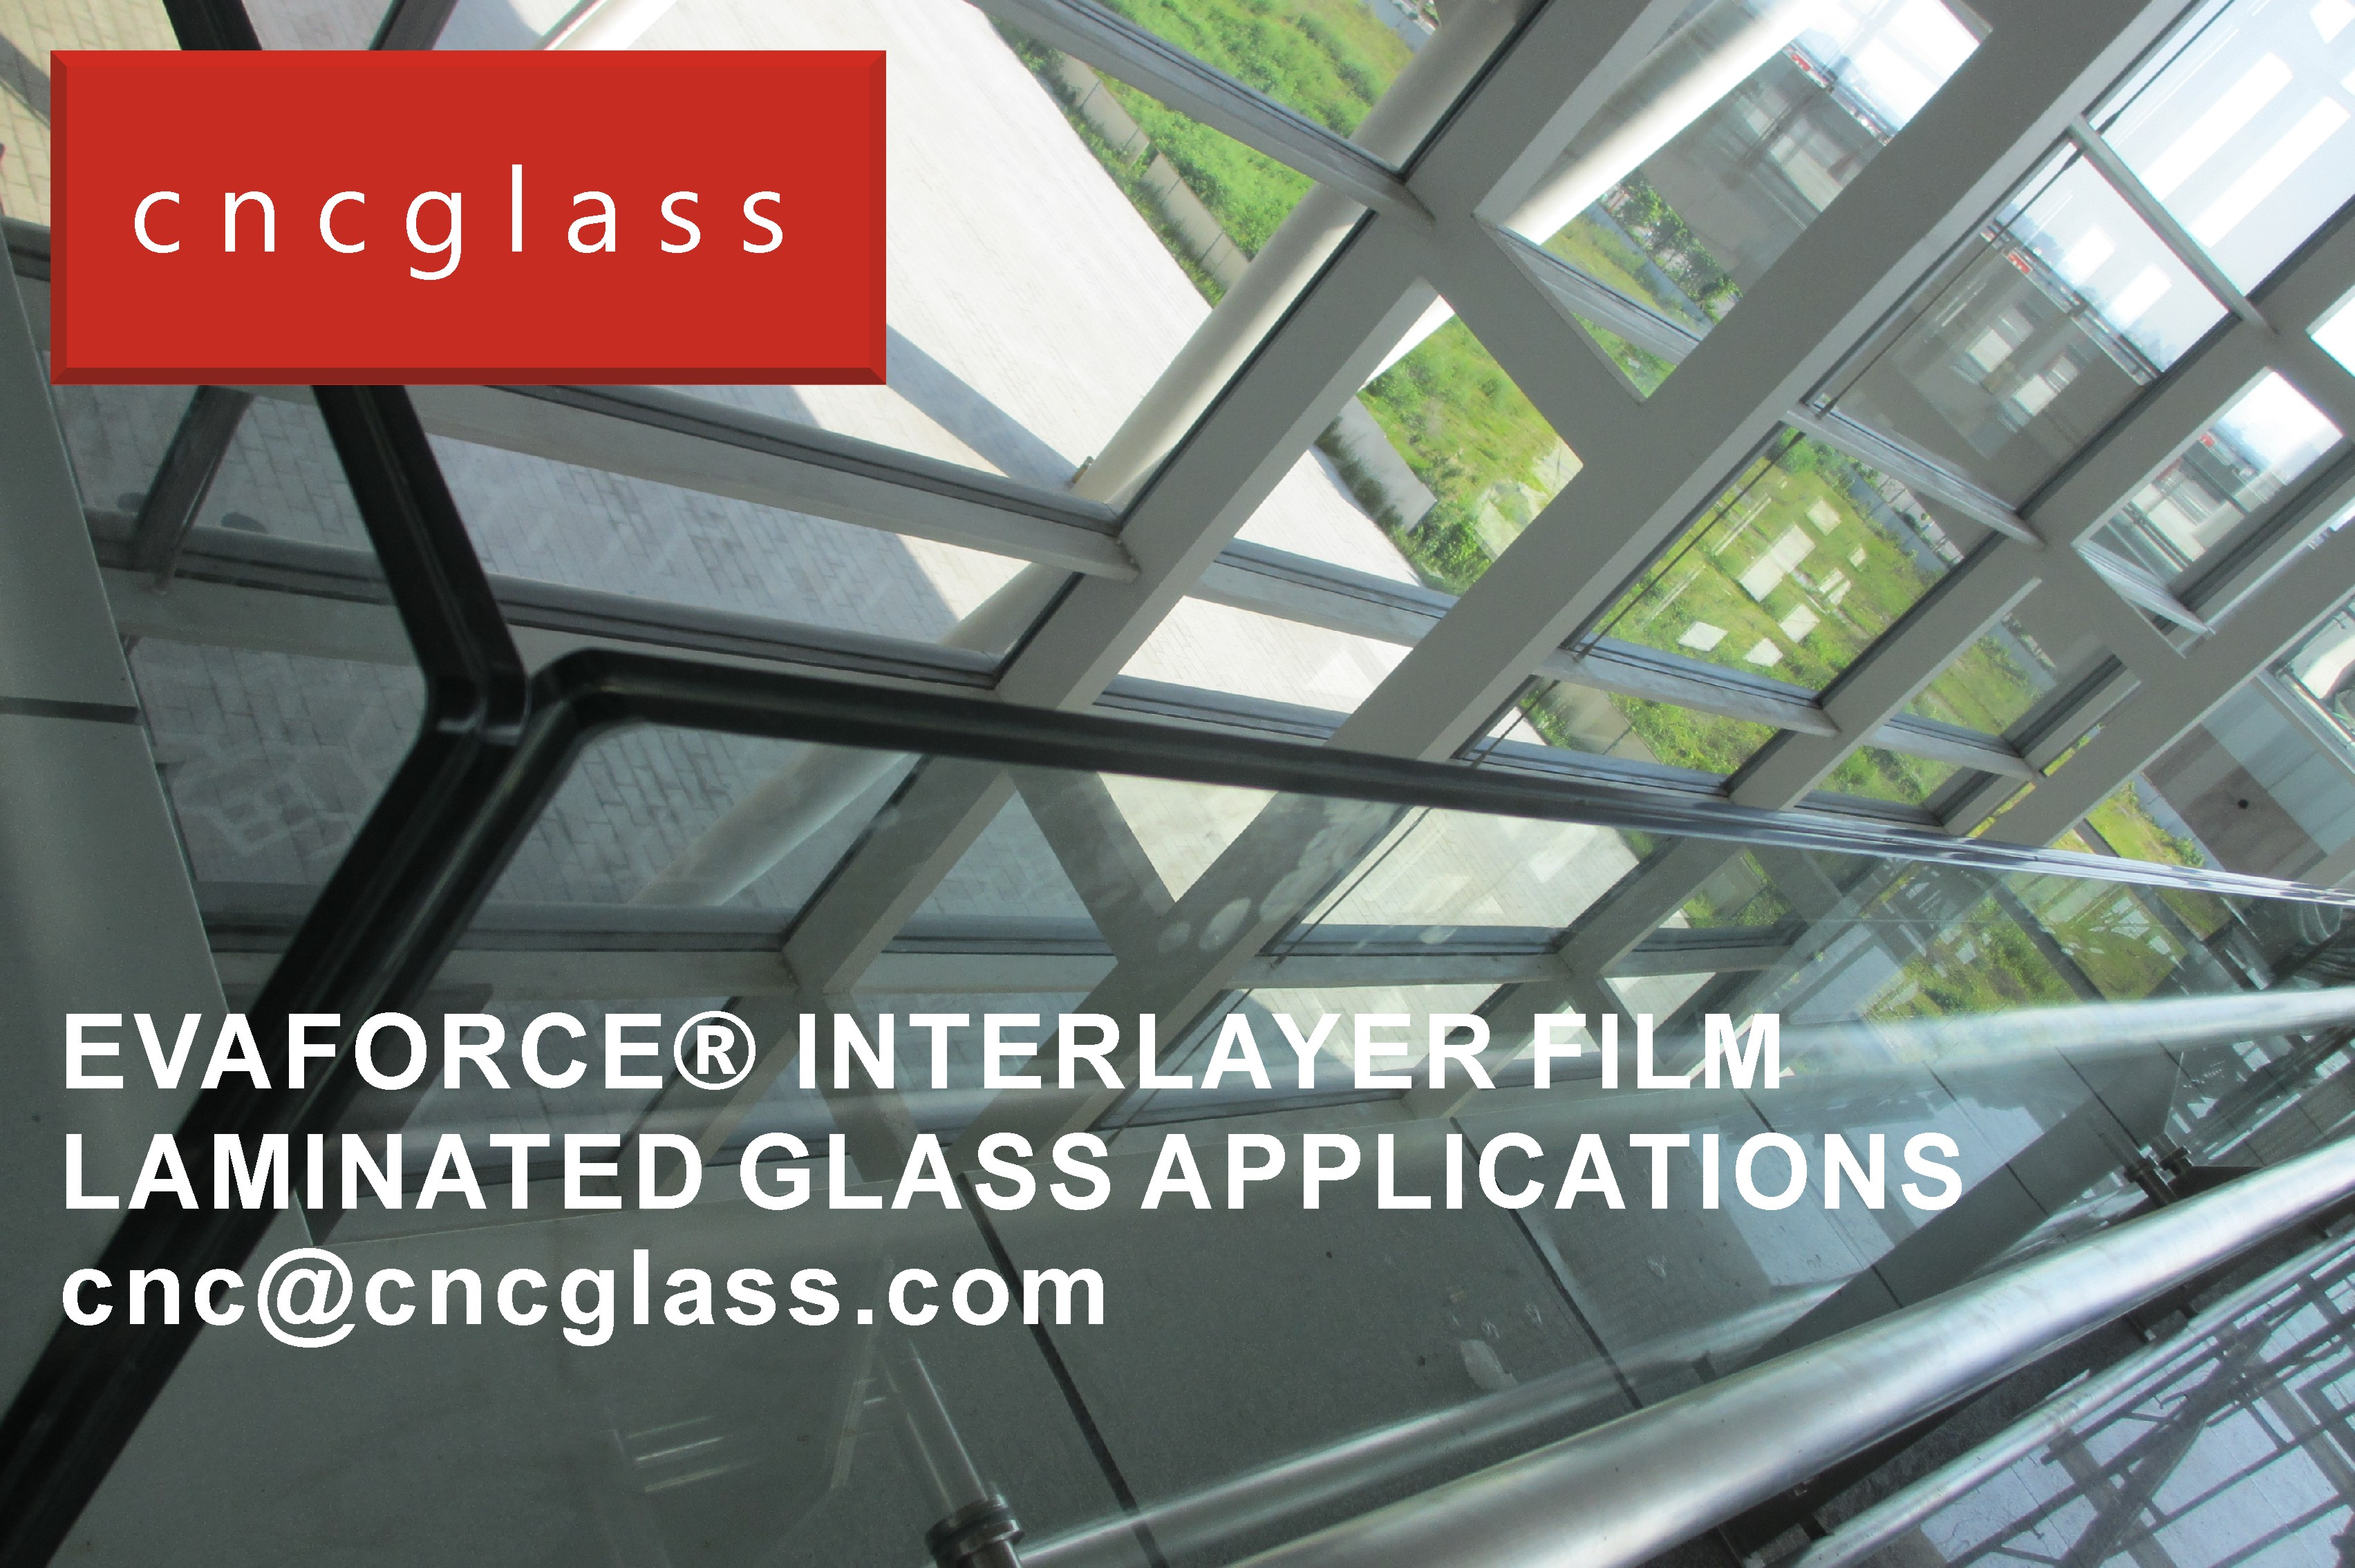 EVAFORCE INTERLAYER FILM LAMINATED GLASS APPLICATIONS (14)